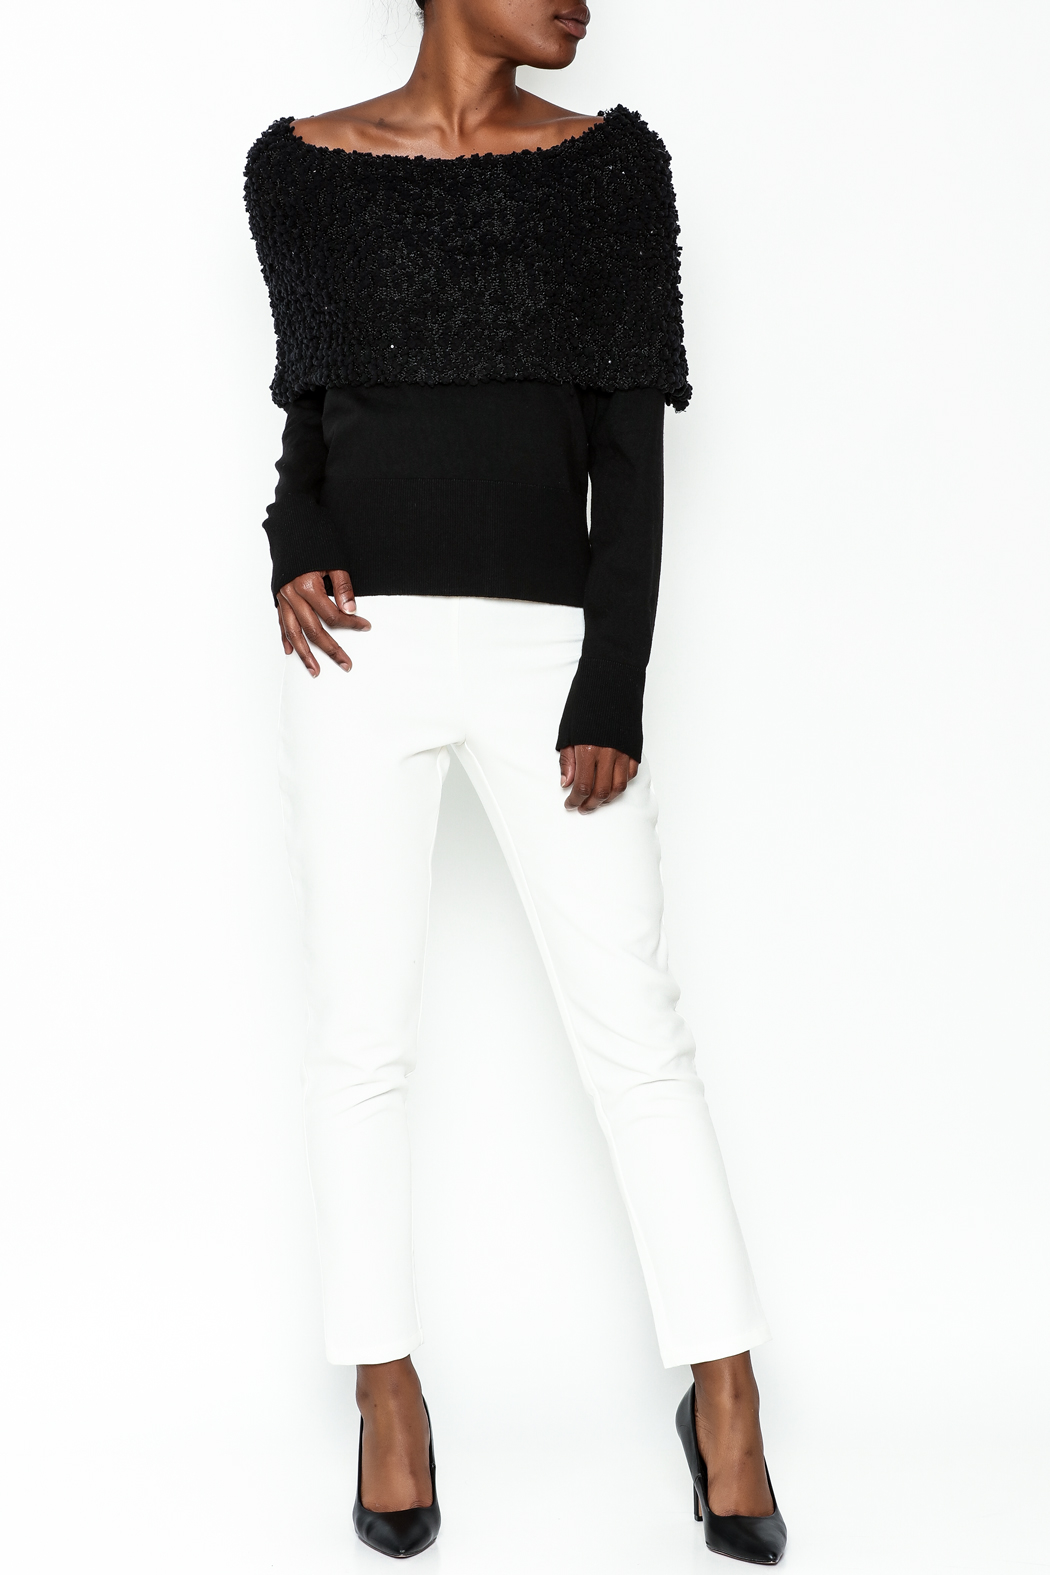 Charlie Paige Sparkle Collar Sweater - Side Cropped Image